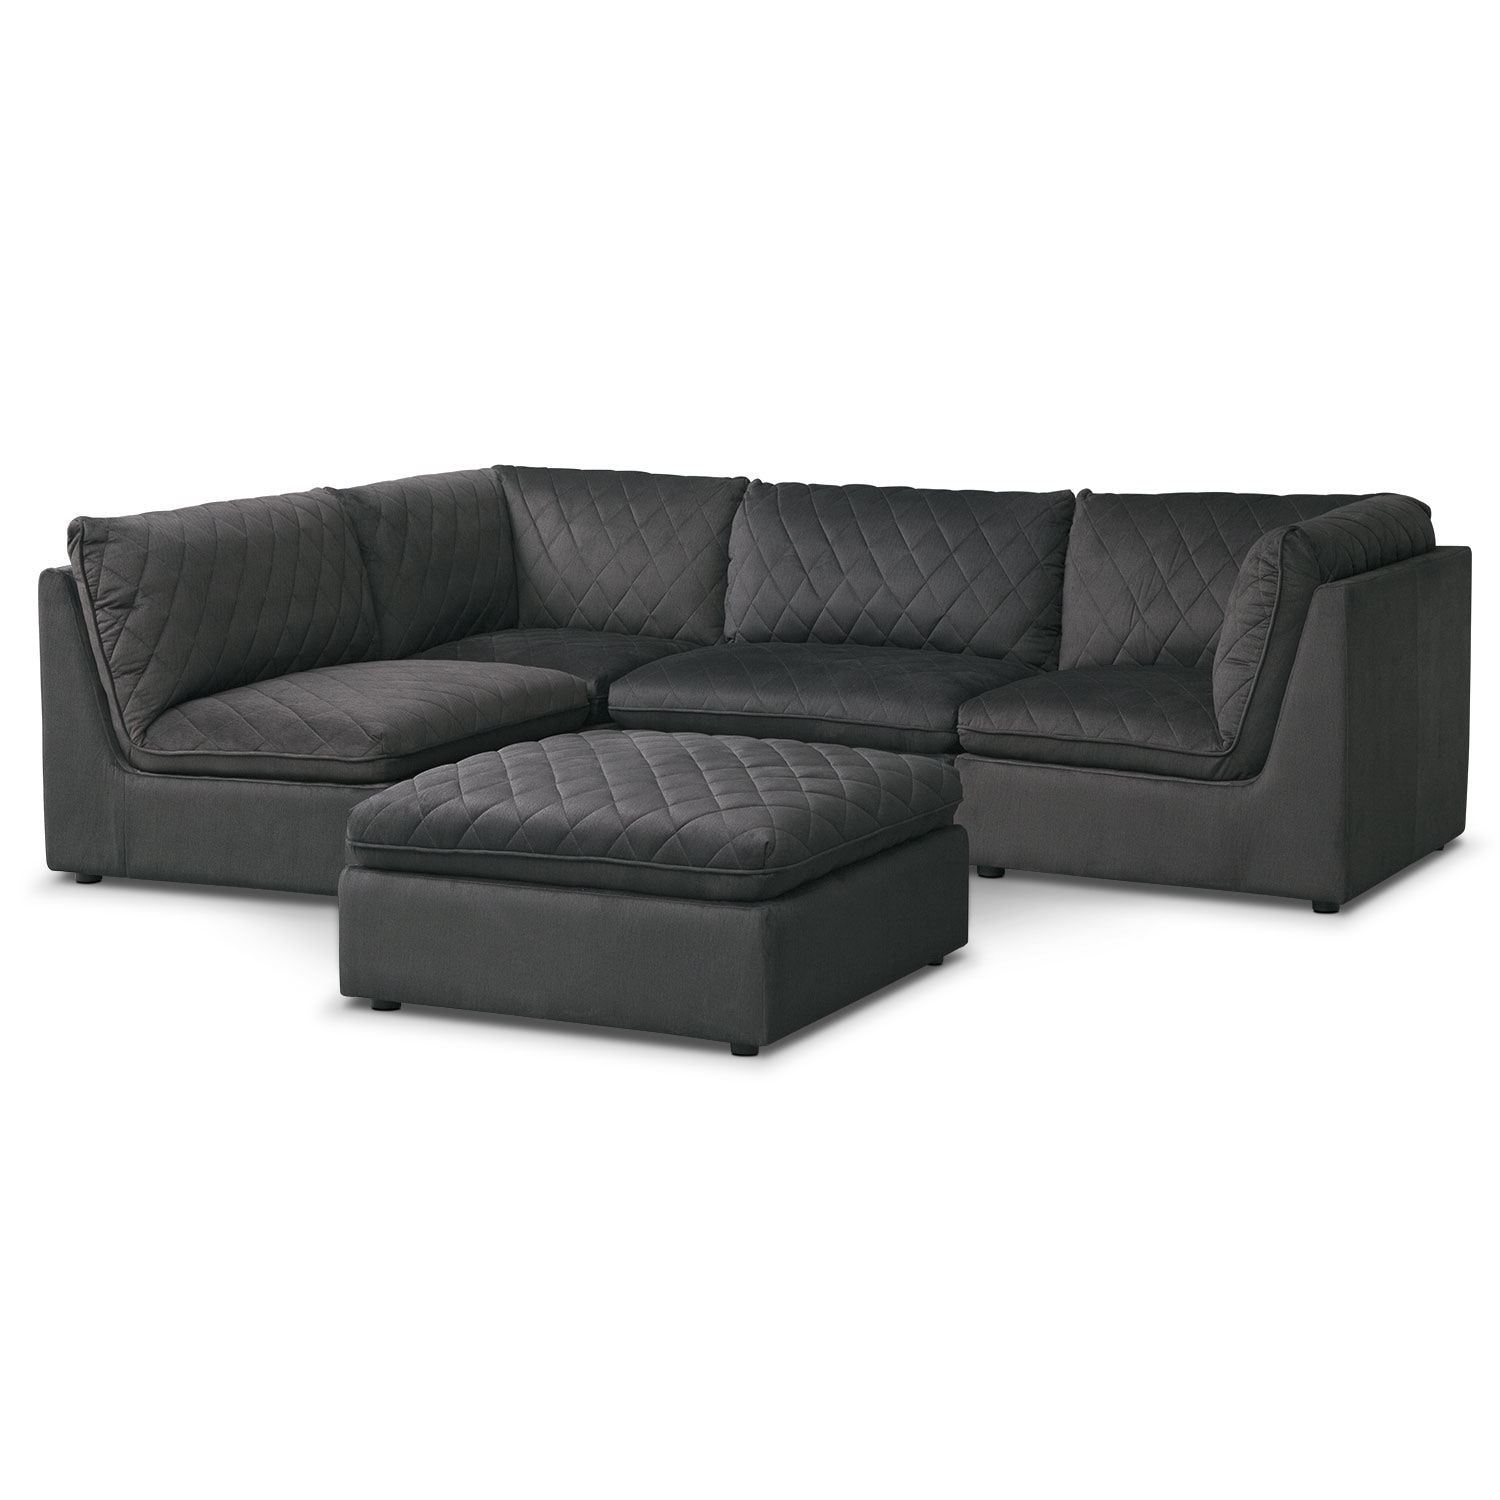 Living Room Furniture - Coco Charcoal 4-Piece Sectional with Cocktail Ottoman